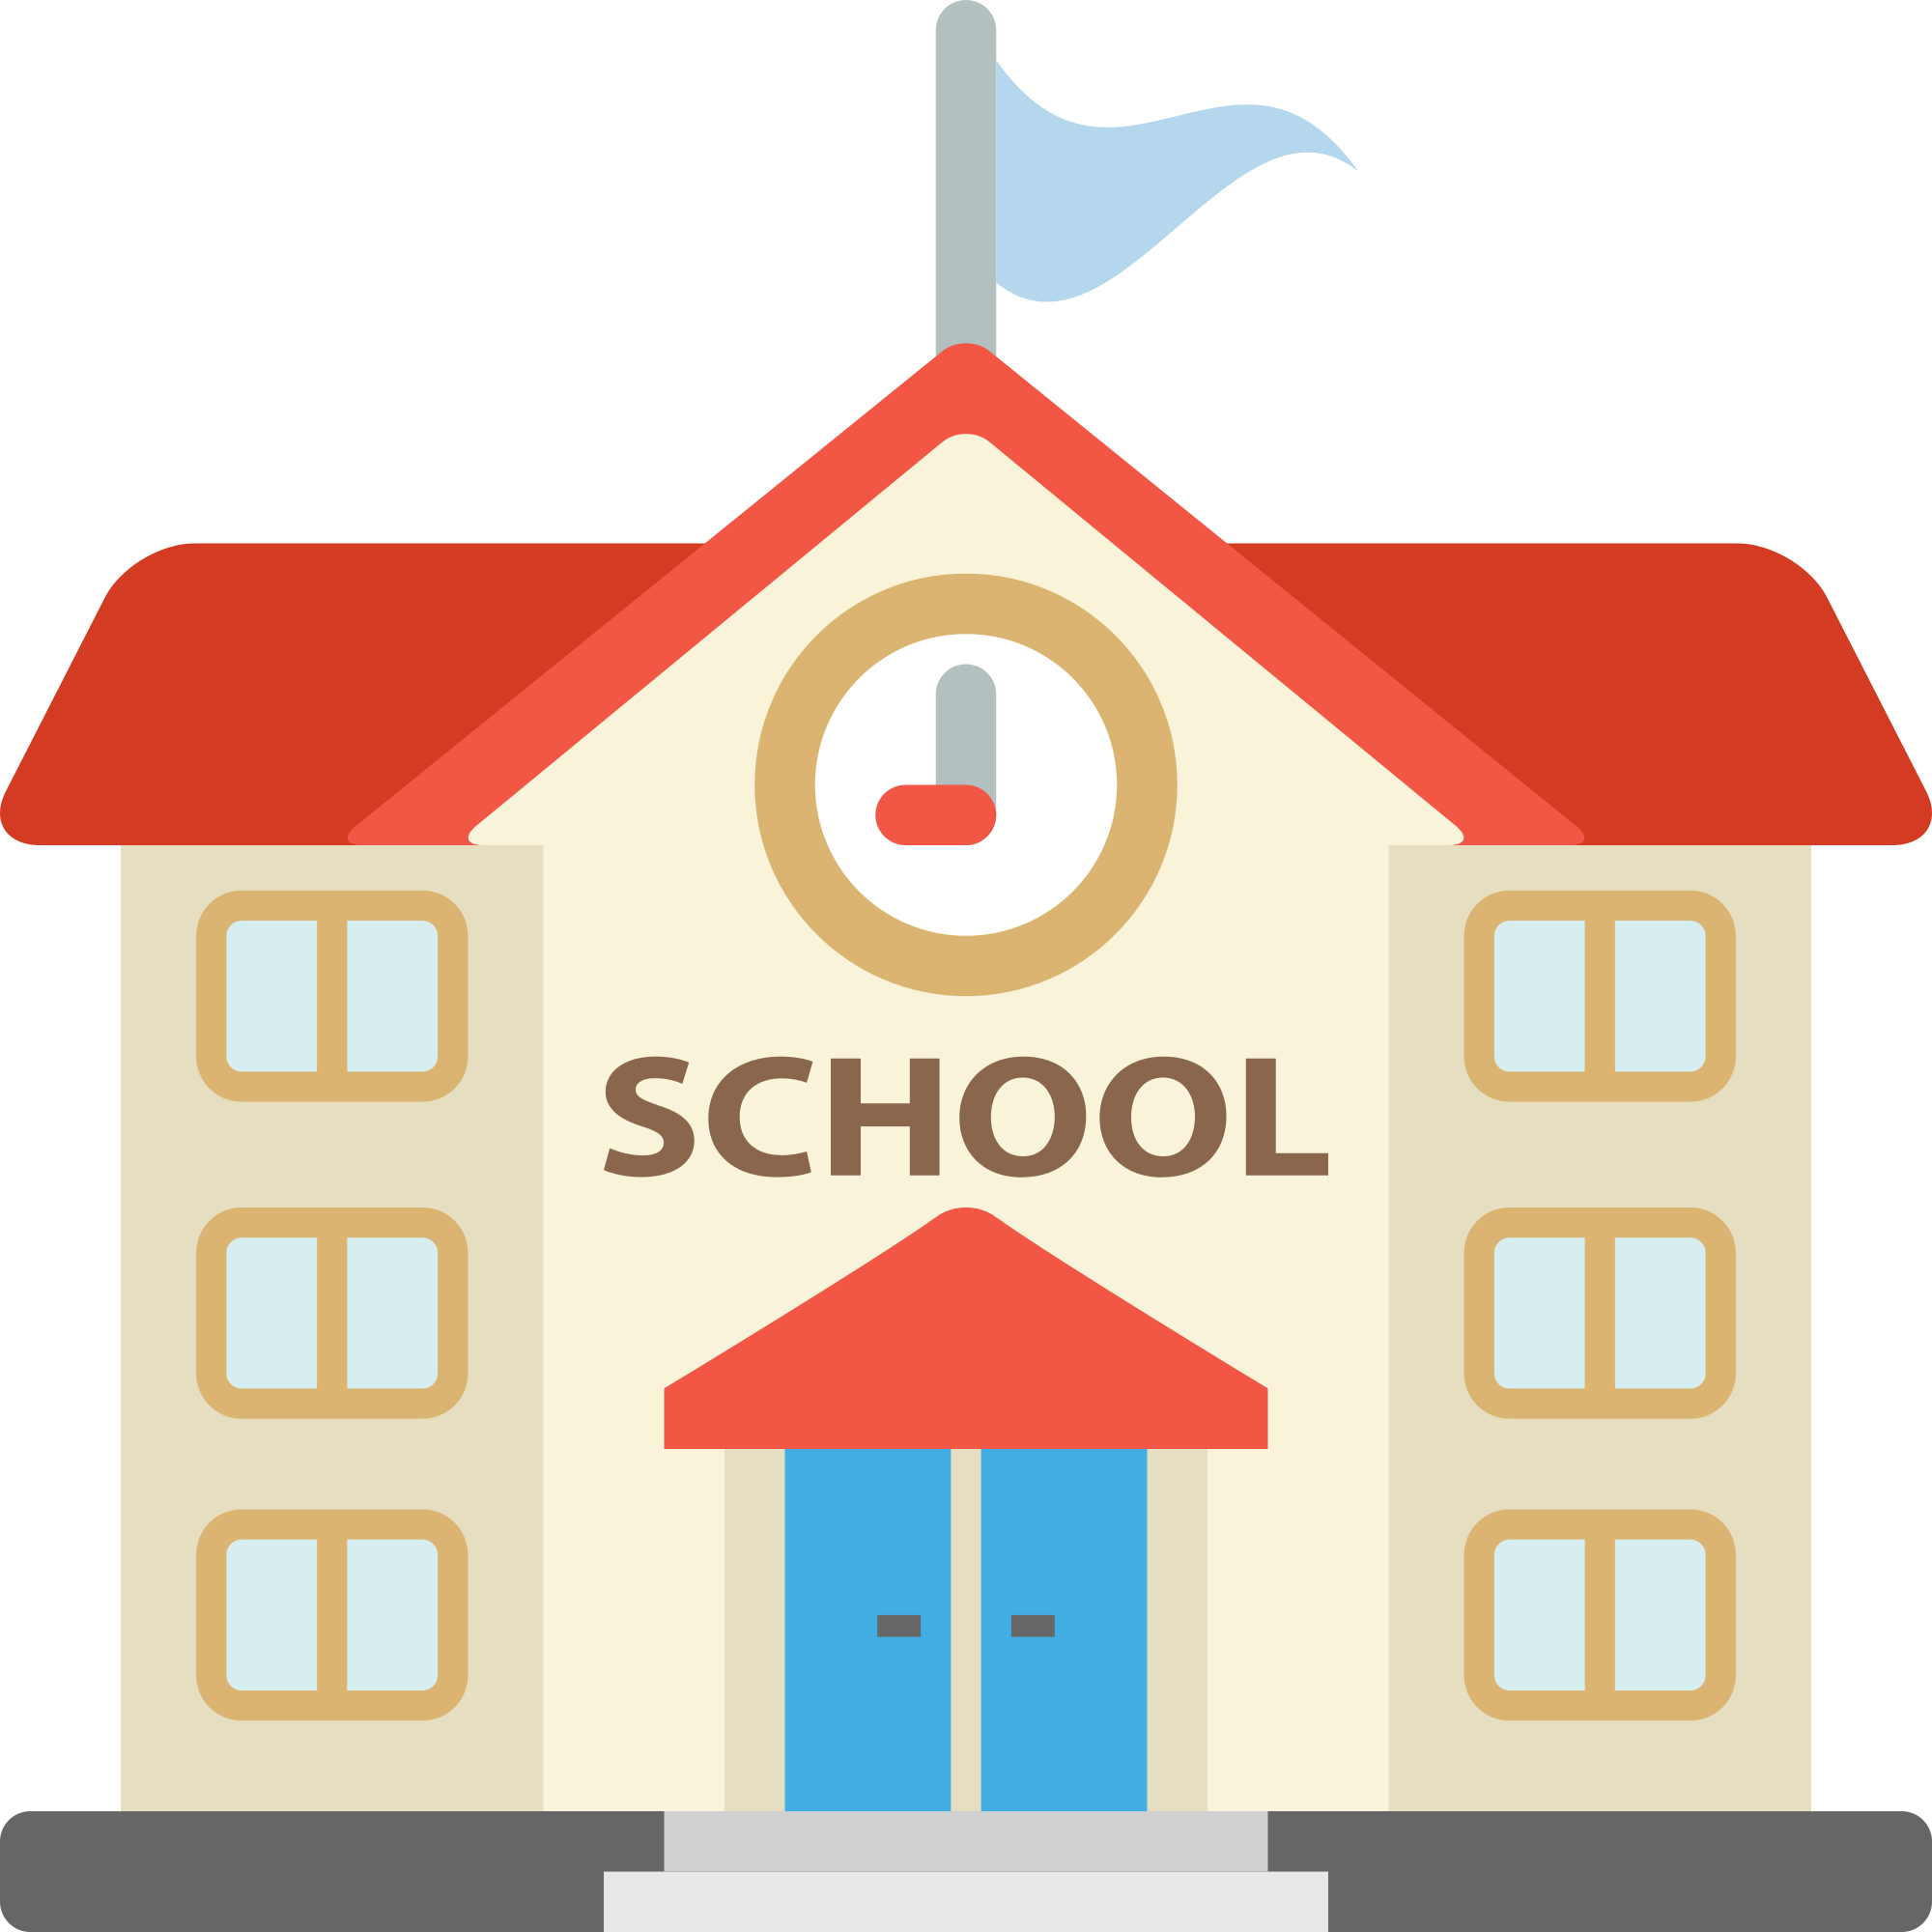 Schoolhouse clipart university school.  collection of elementary